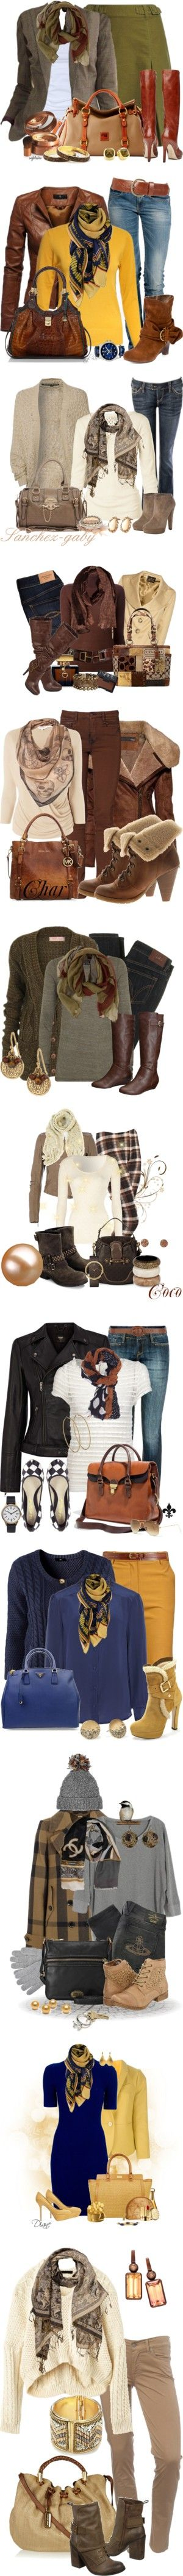 Wonderful ideas for photoshoot attire for cold weather!